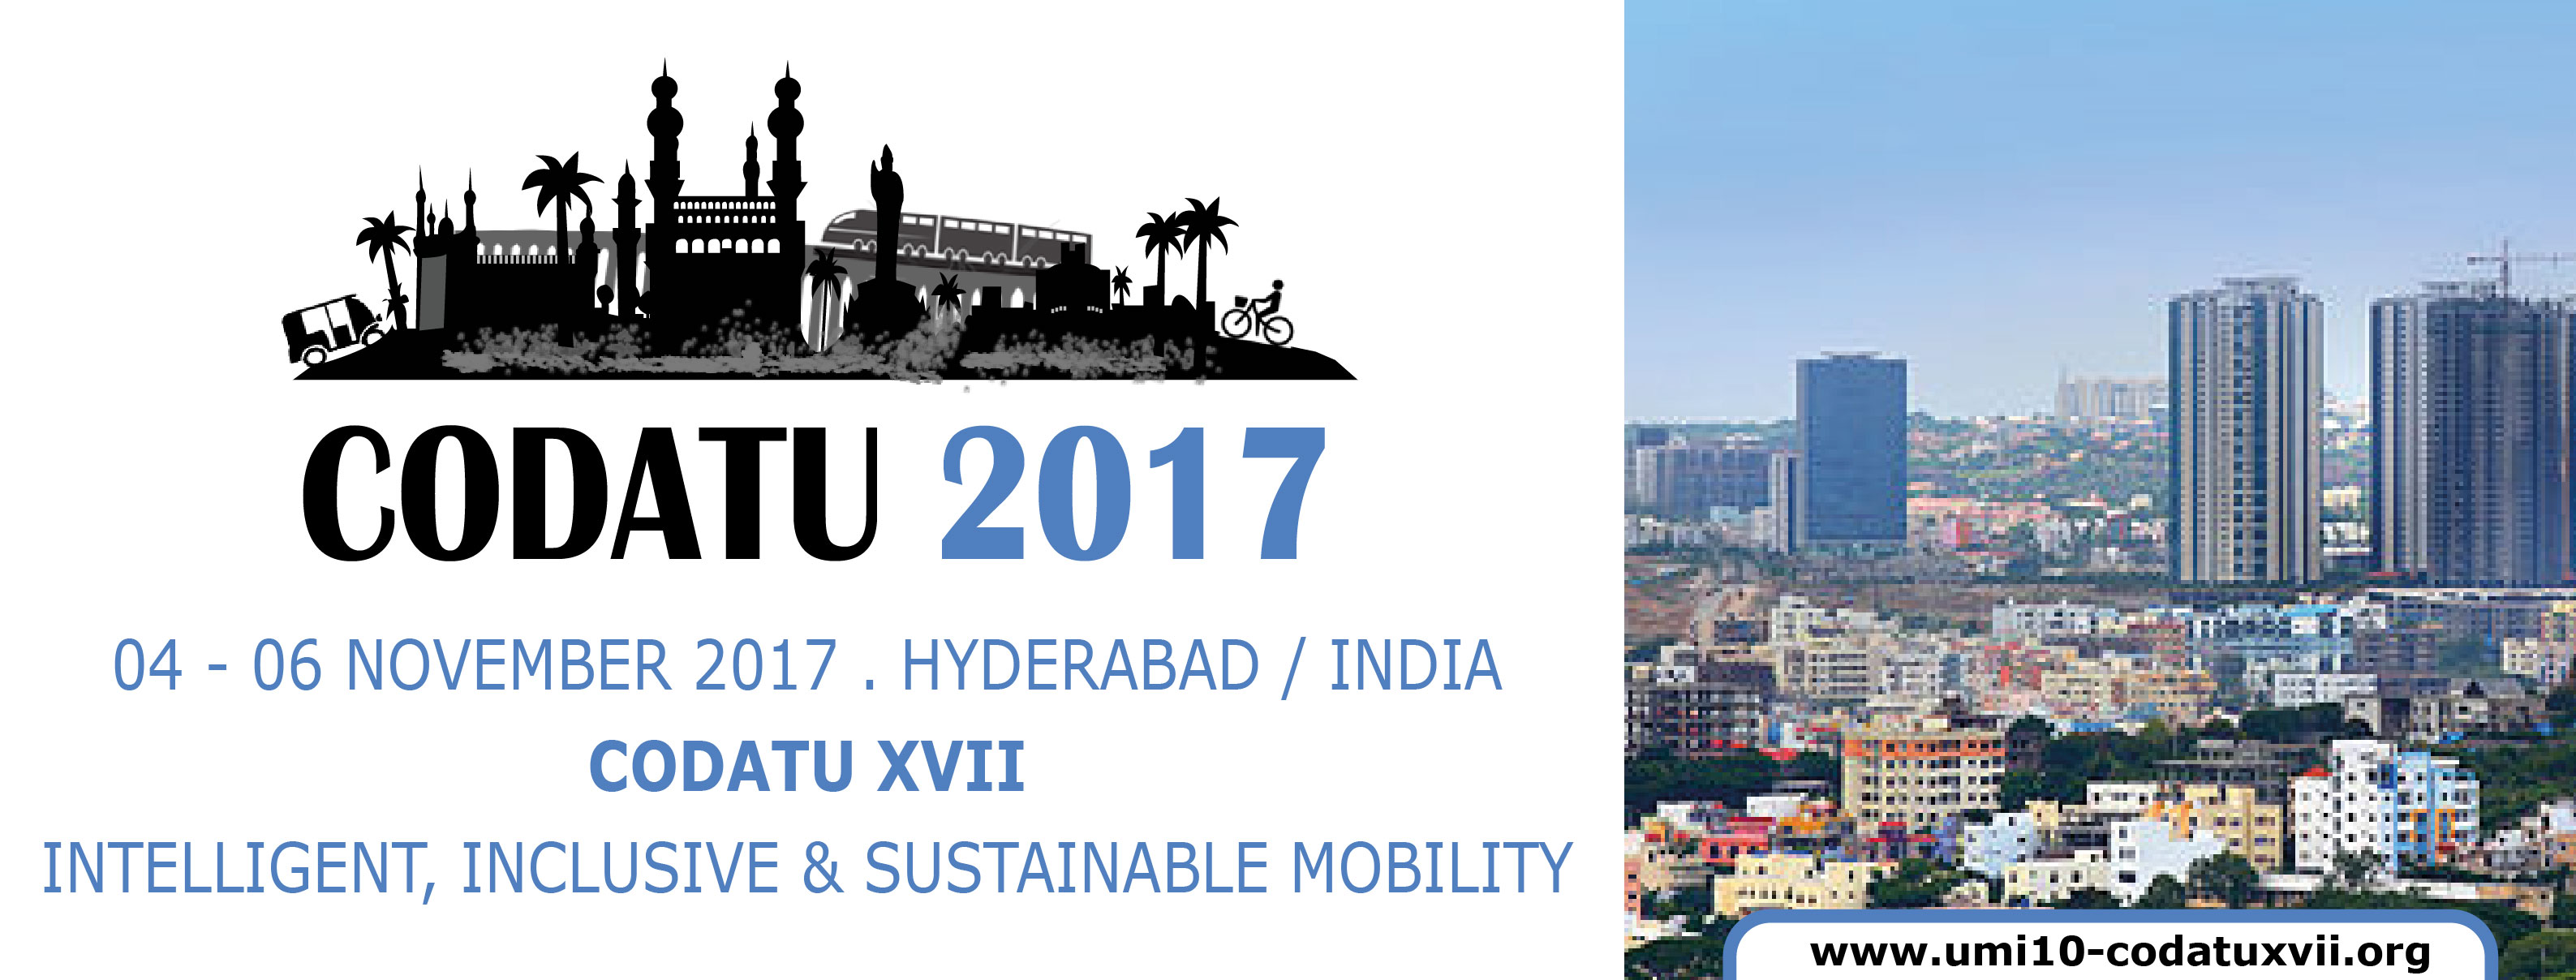 [CODATU XVII] Presentation : Bicycle Sharing Project, Mysore – Shri Darpan Jain, Commissioner, Directorate of Urban Land Transport (DULT) & Shri N. Murali Krishna, ITS, Special Officer, DULT